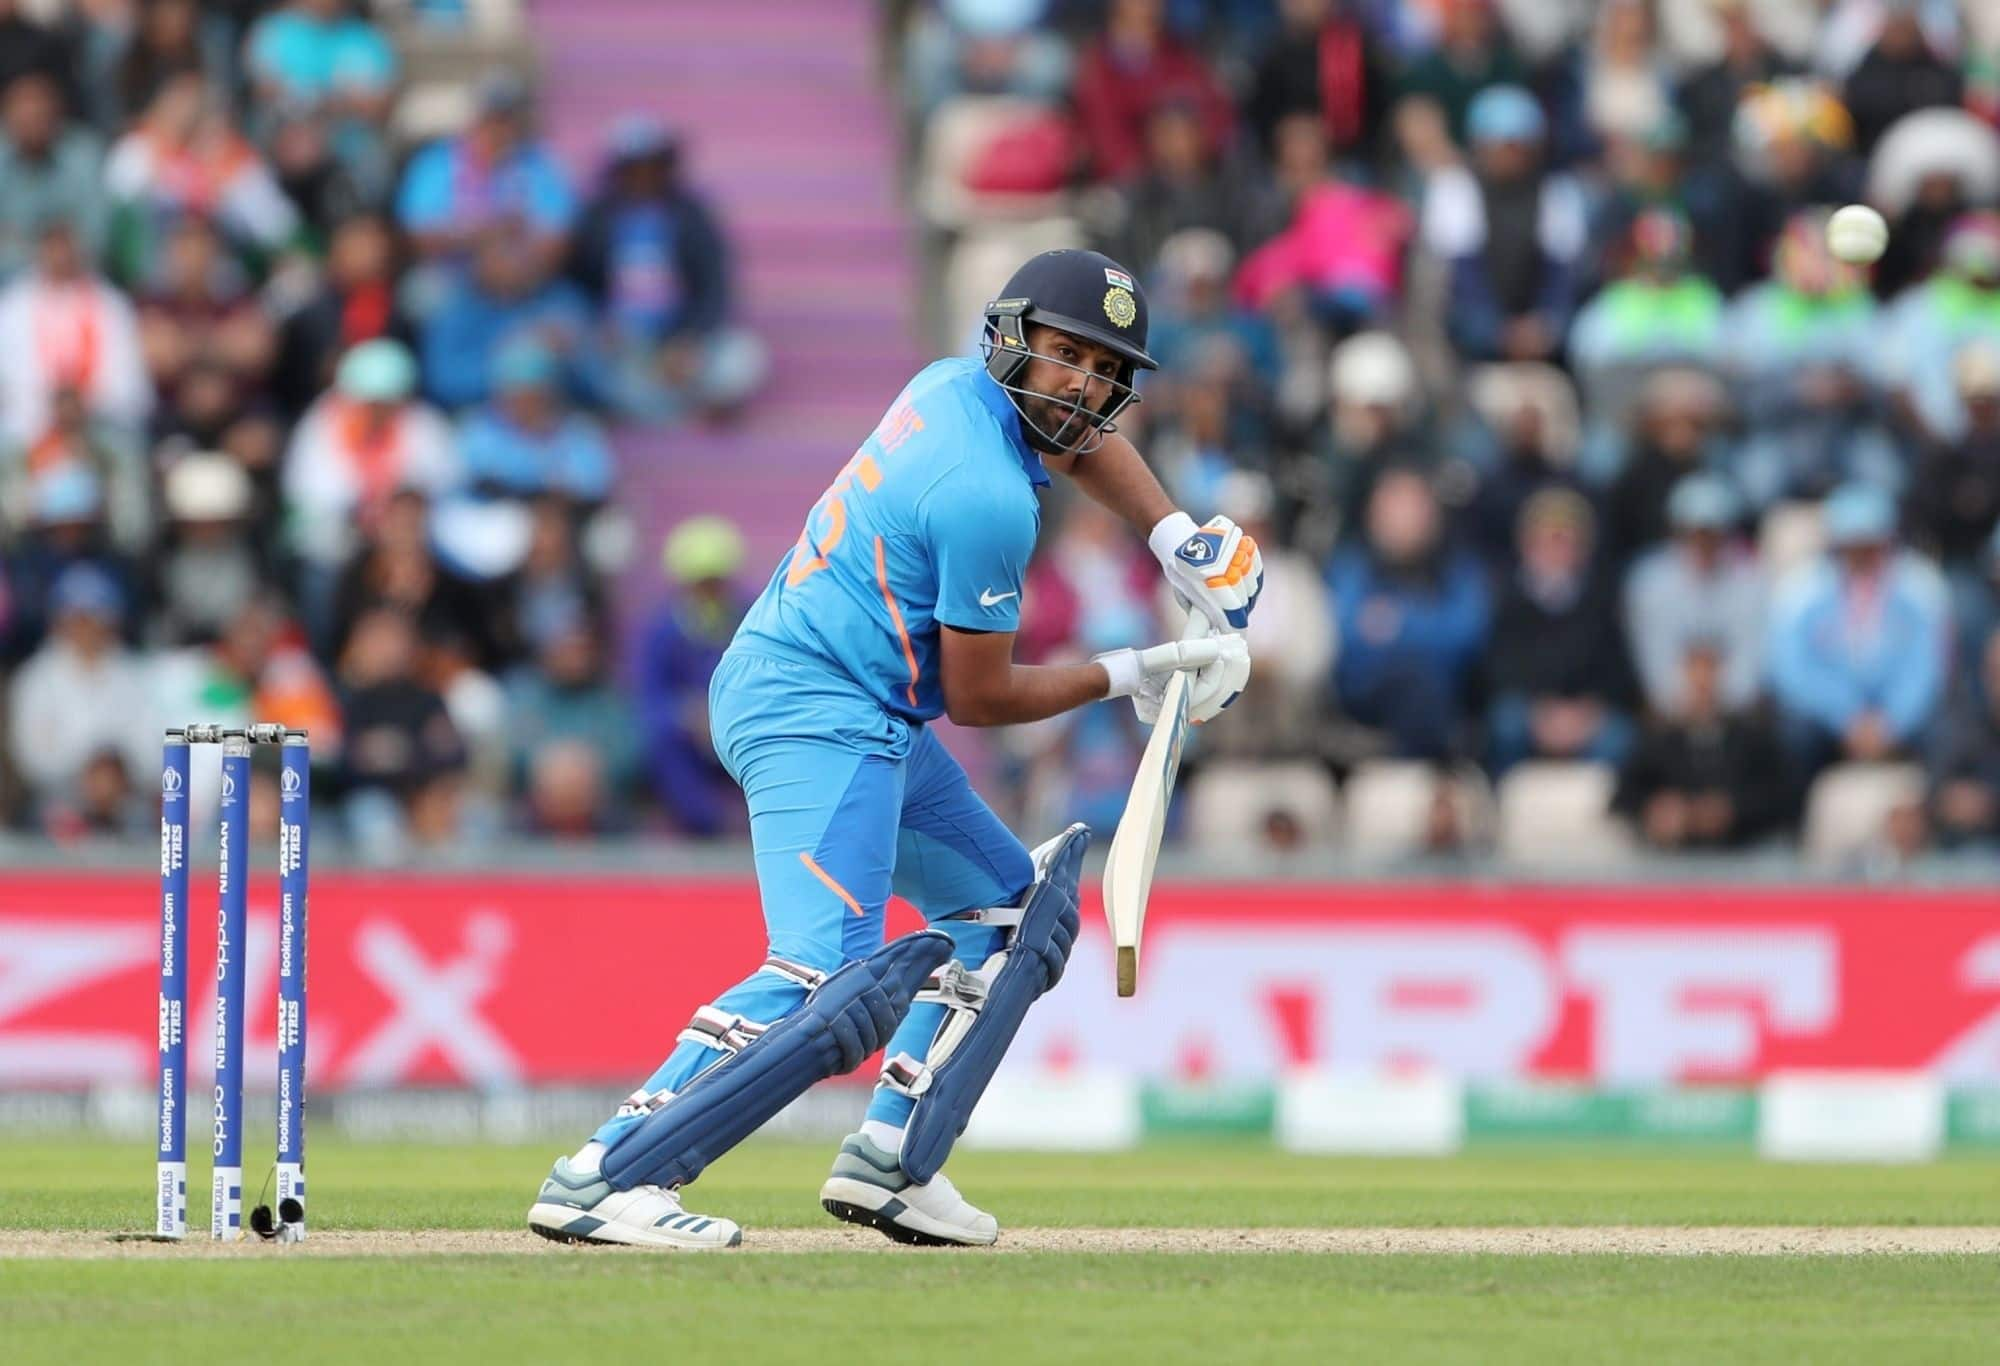 ICC CRICKET WORLD CUP 2019: Rohit Sharma Closes Gap on First-placed Virat Kohli in Latest ODI Rankings